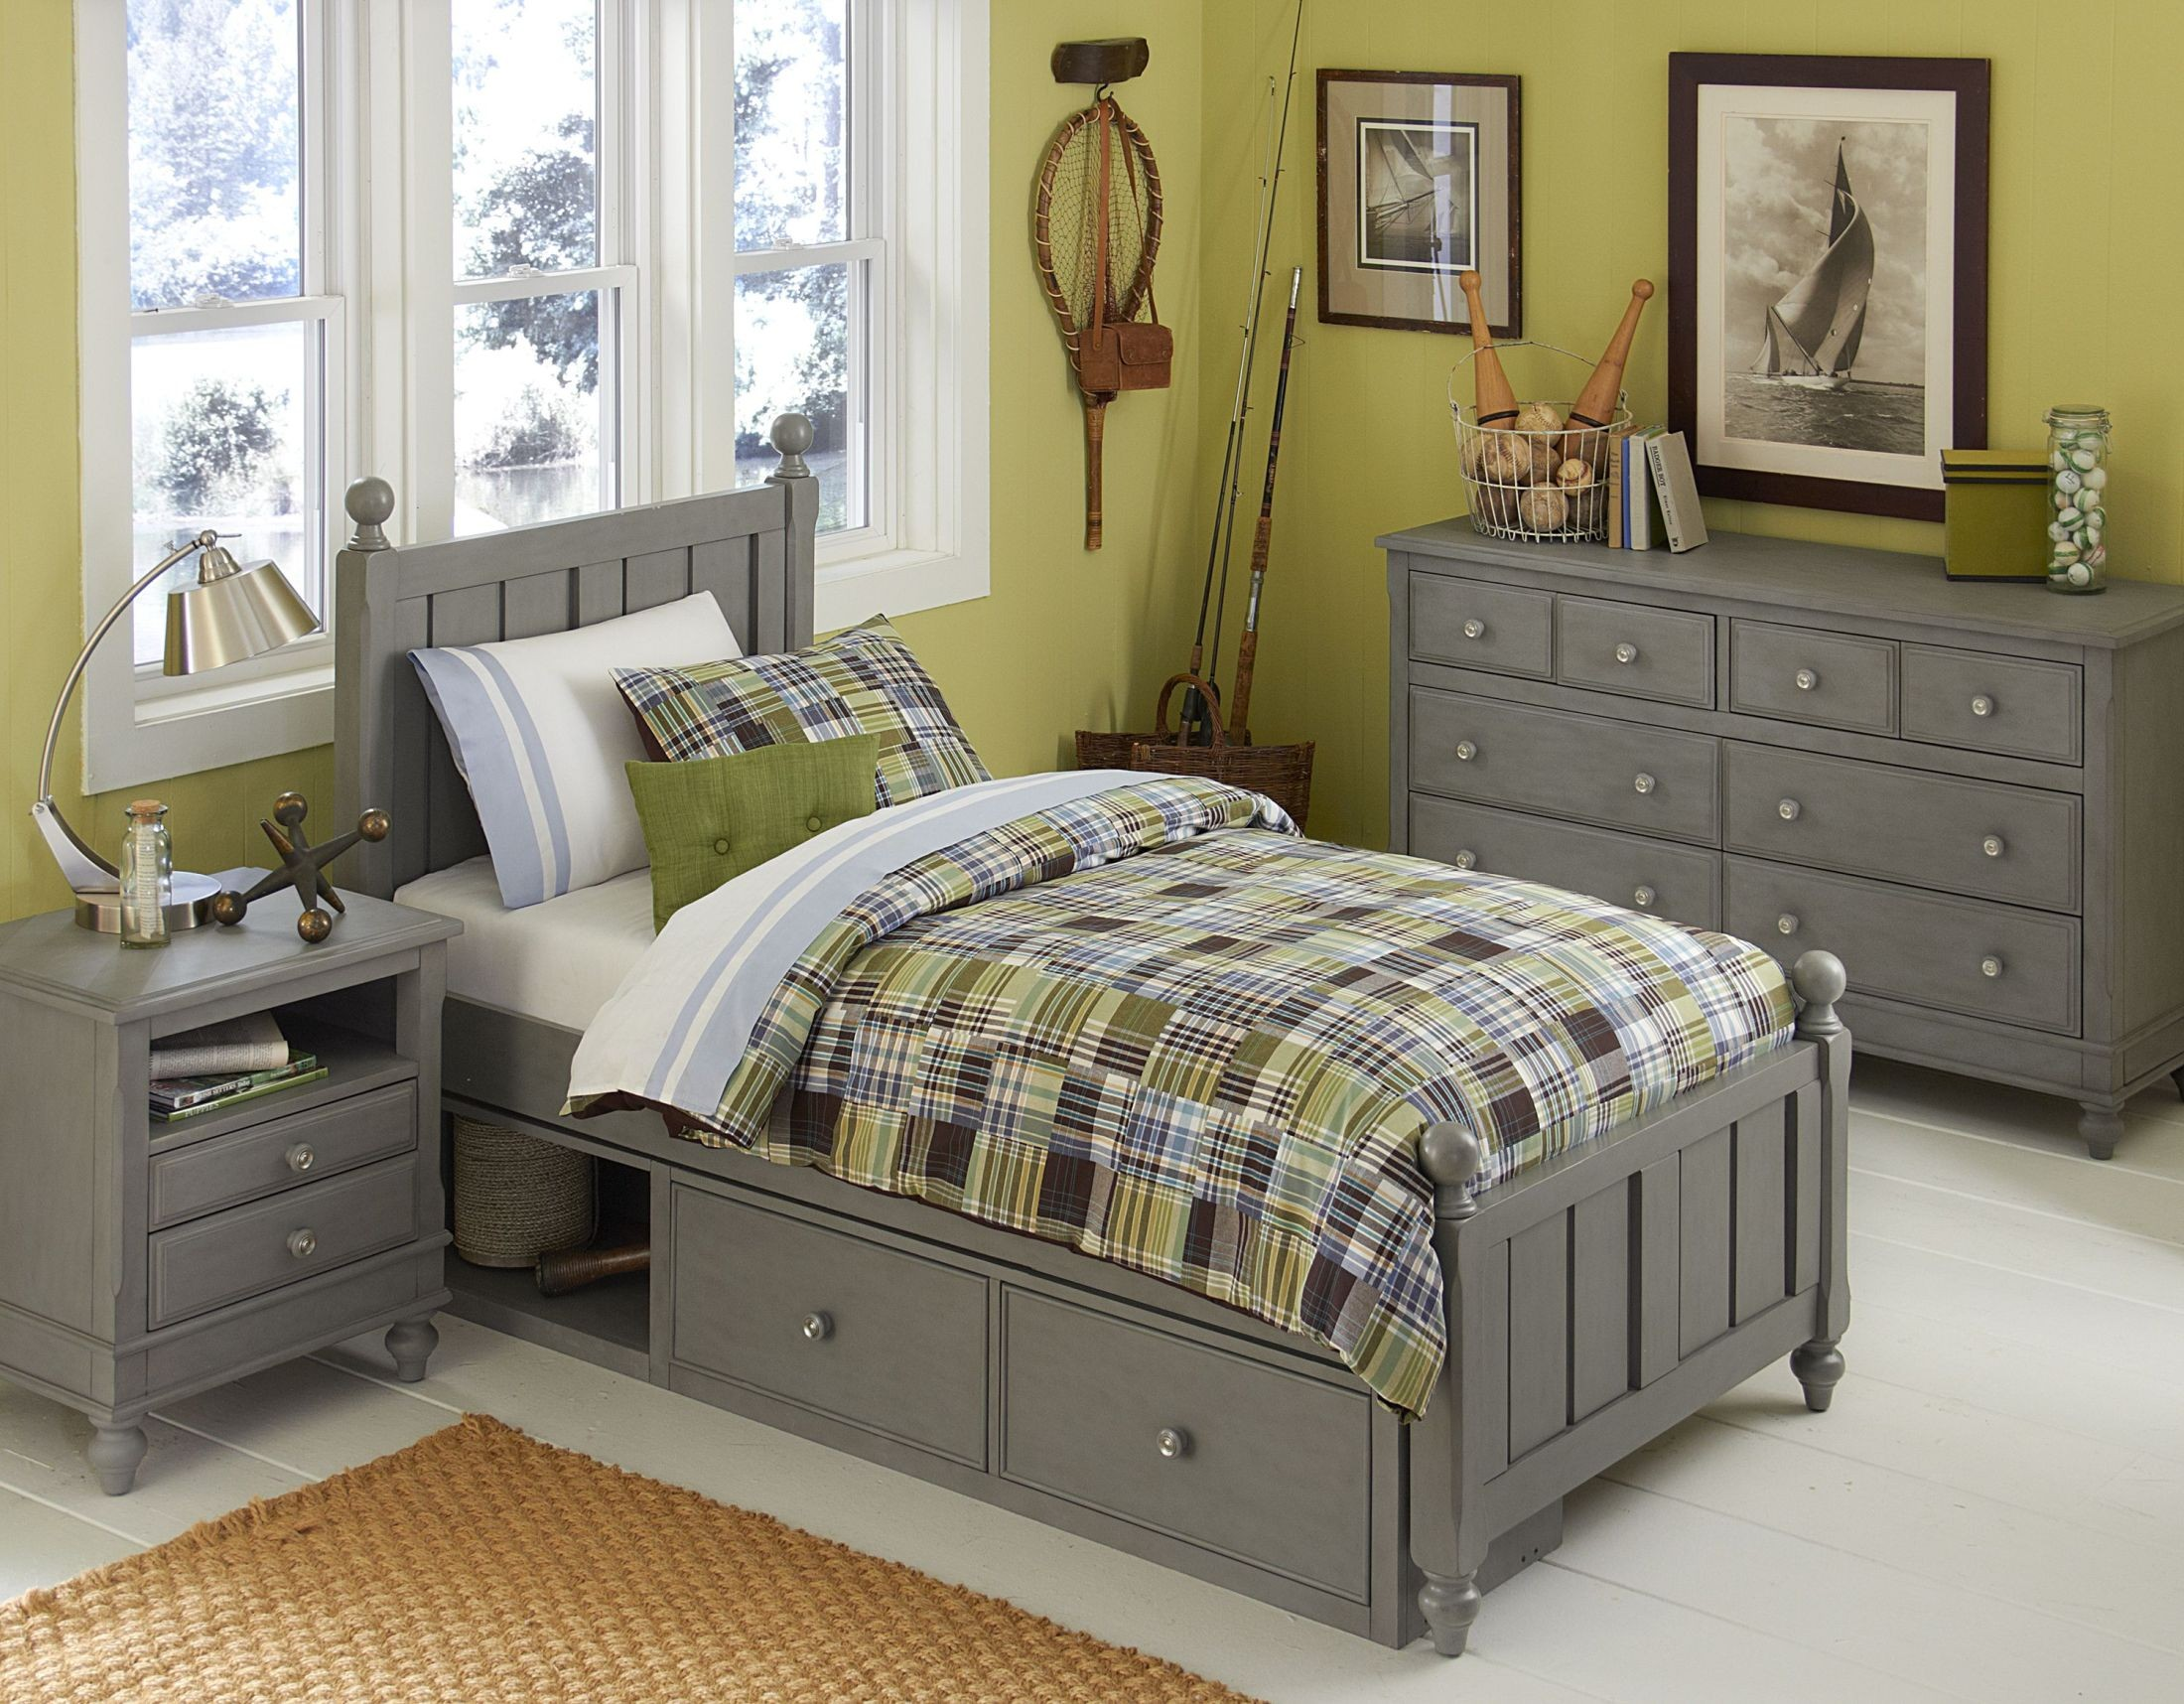 Lake house stone kennedy youth panel bedroom set with two storage units 2020n2s ne kids Lake home bedroom furniture